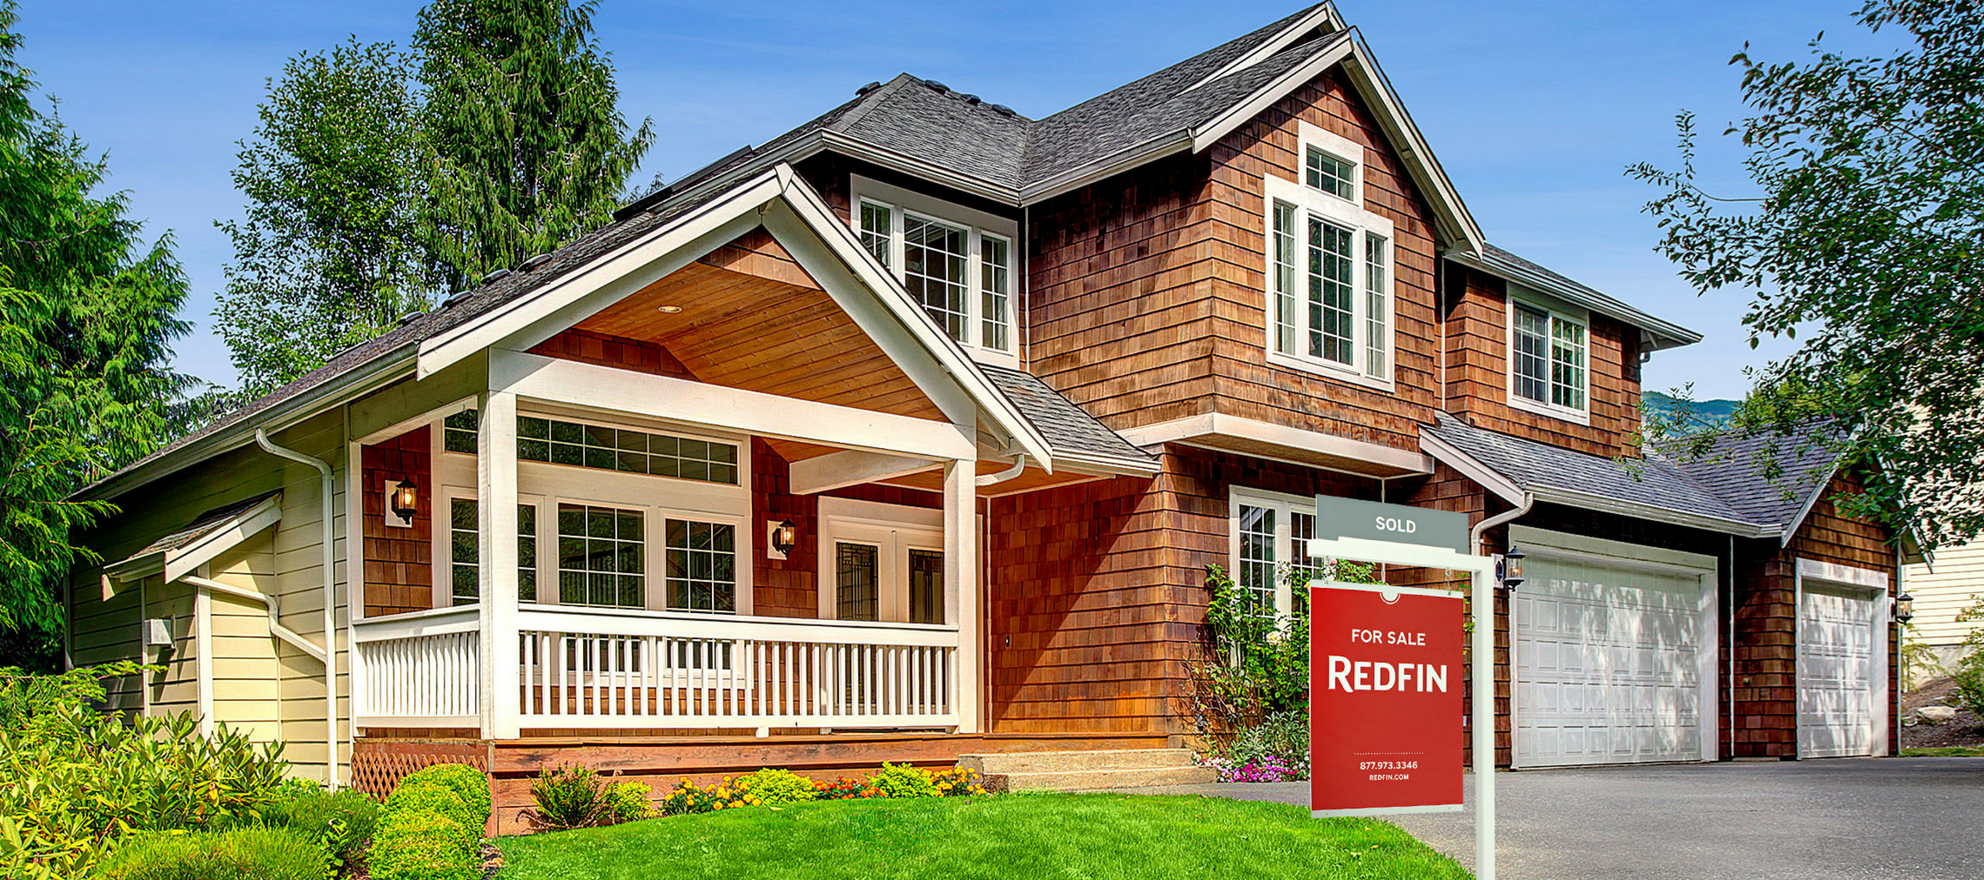 redfin fourth quarter and full year 2017 earnings